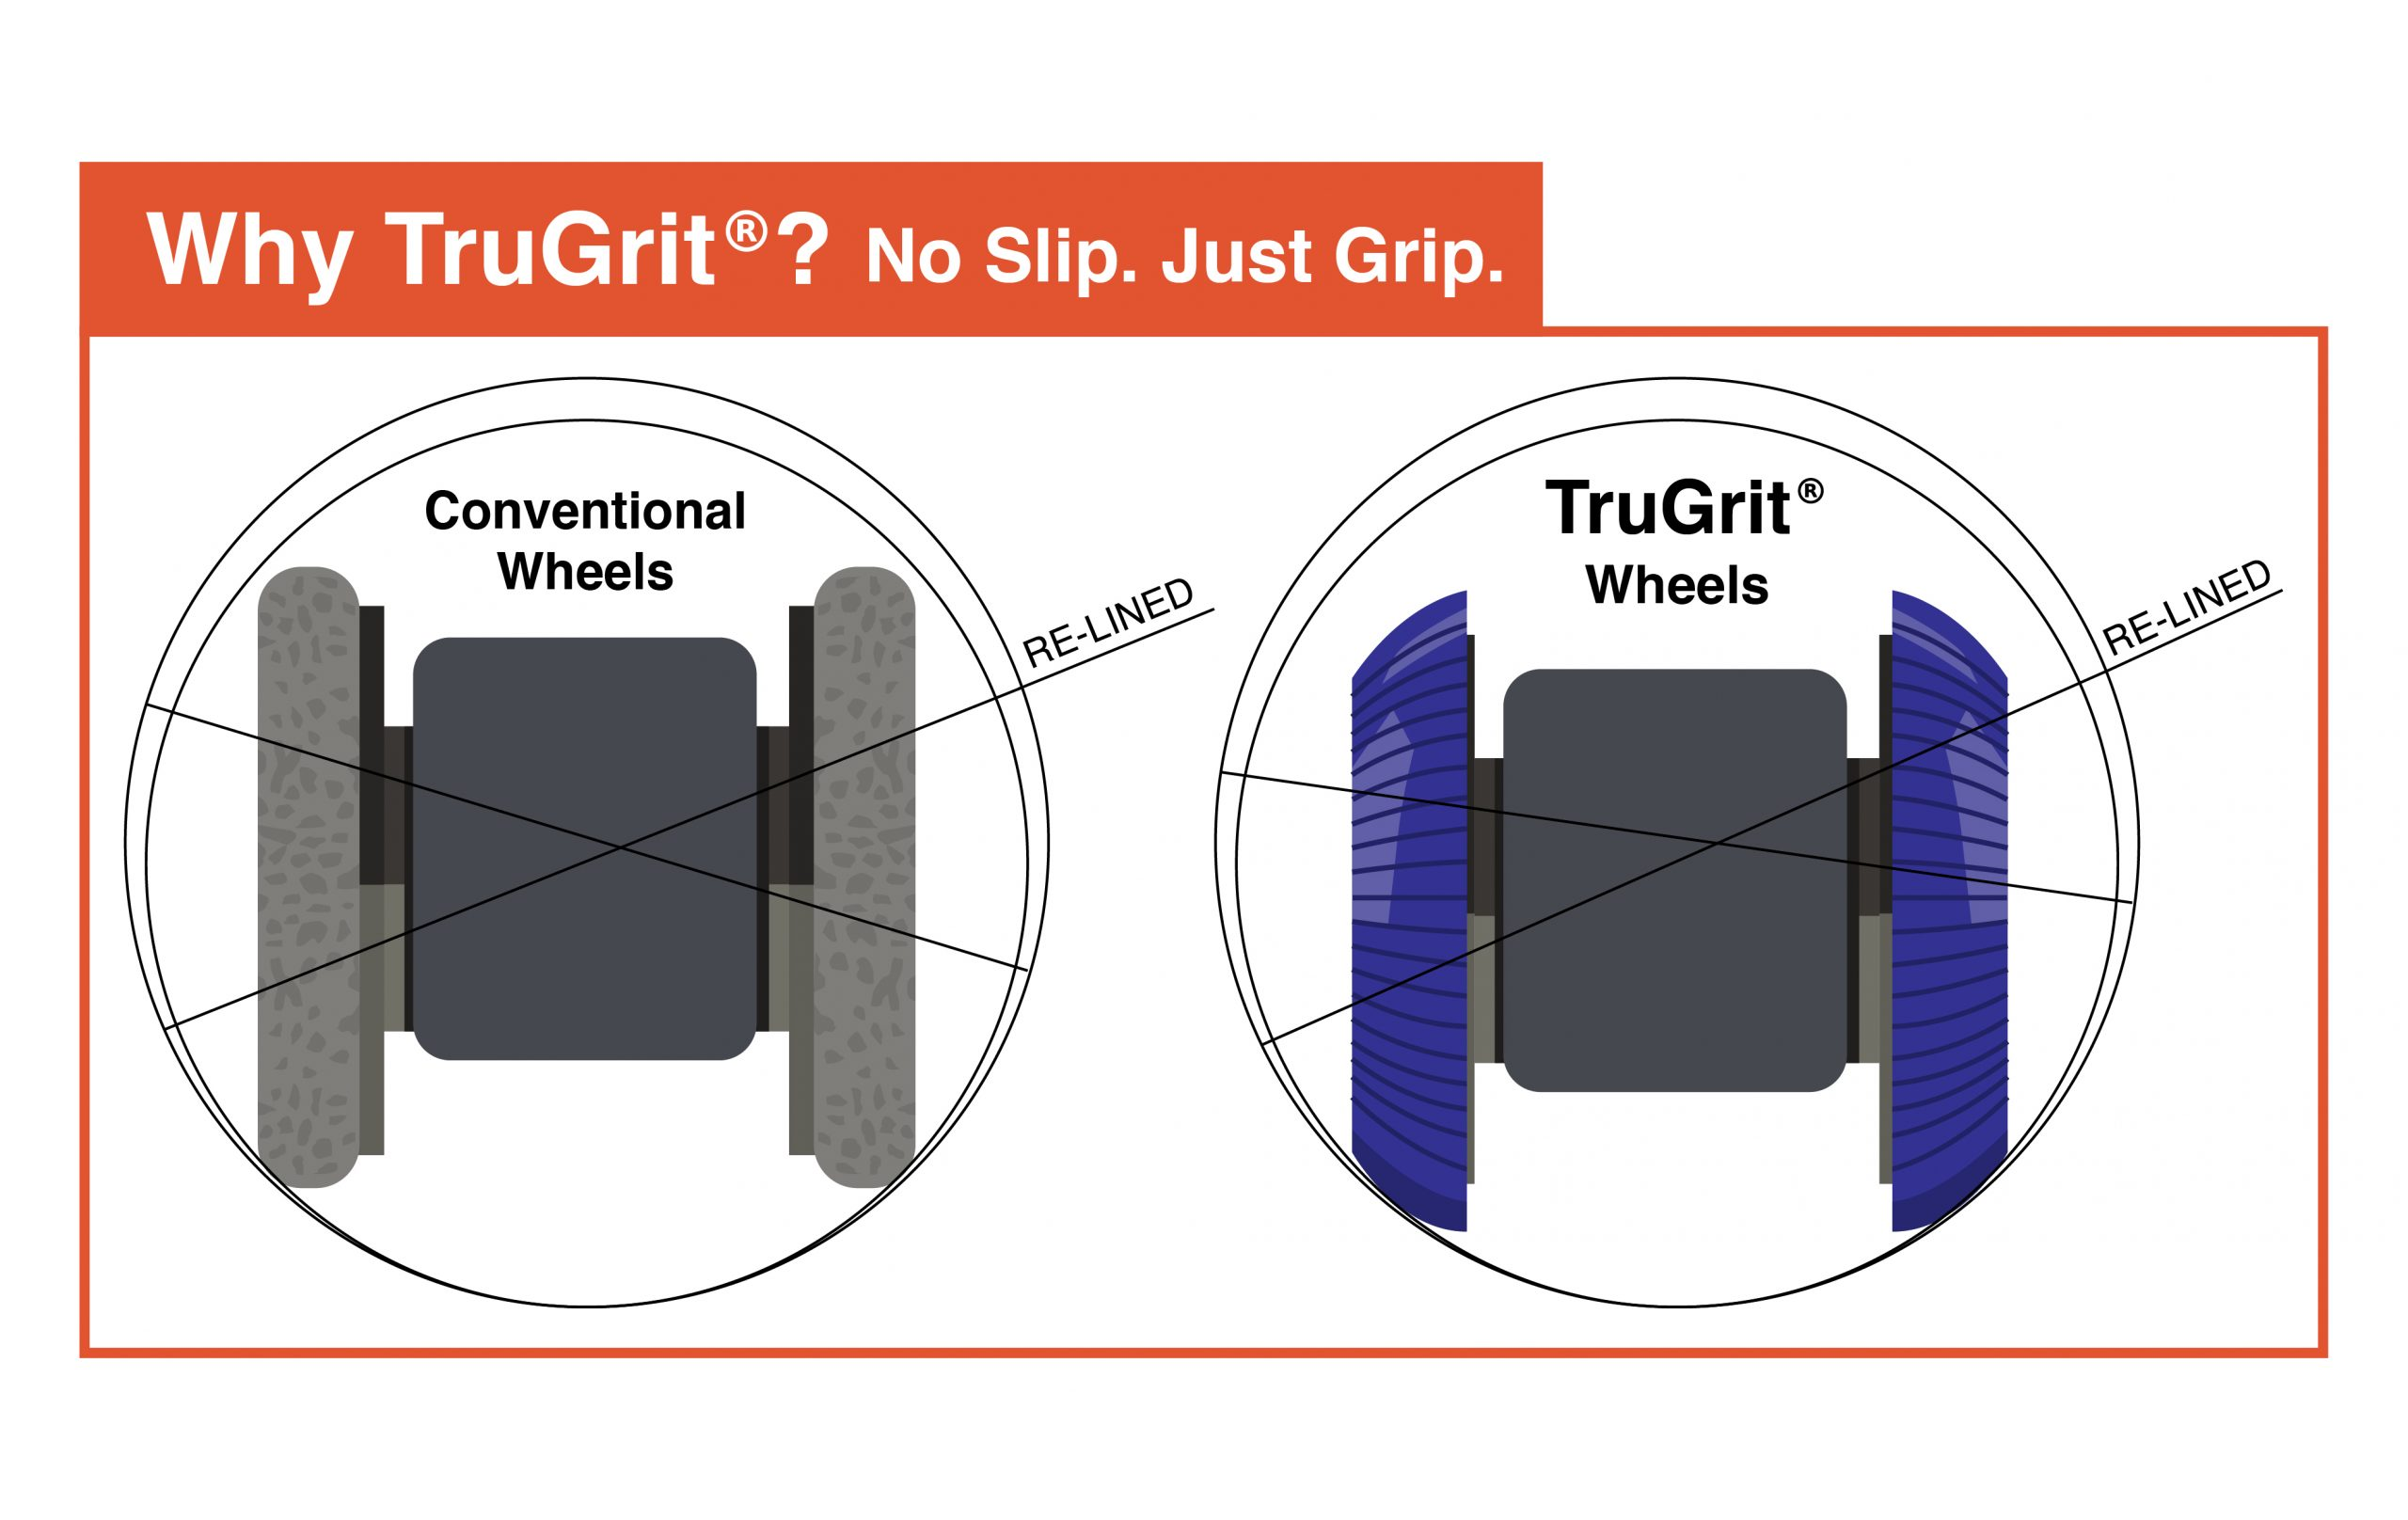 Why TruGrit? We provide No Slip, Just Grip.